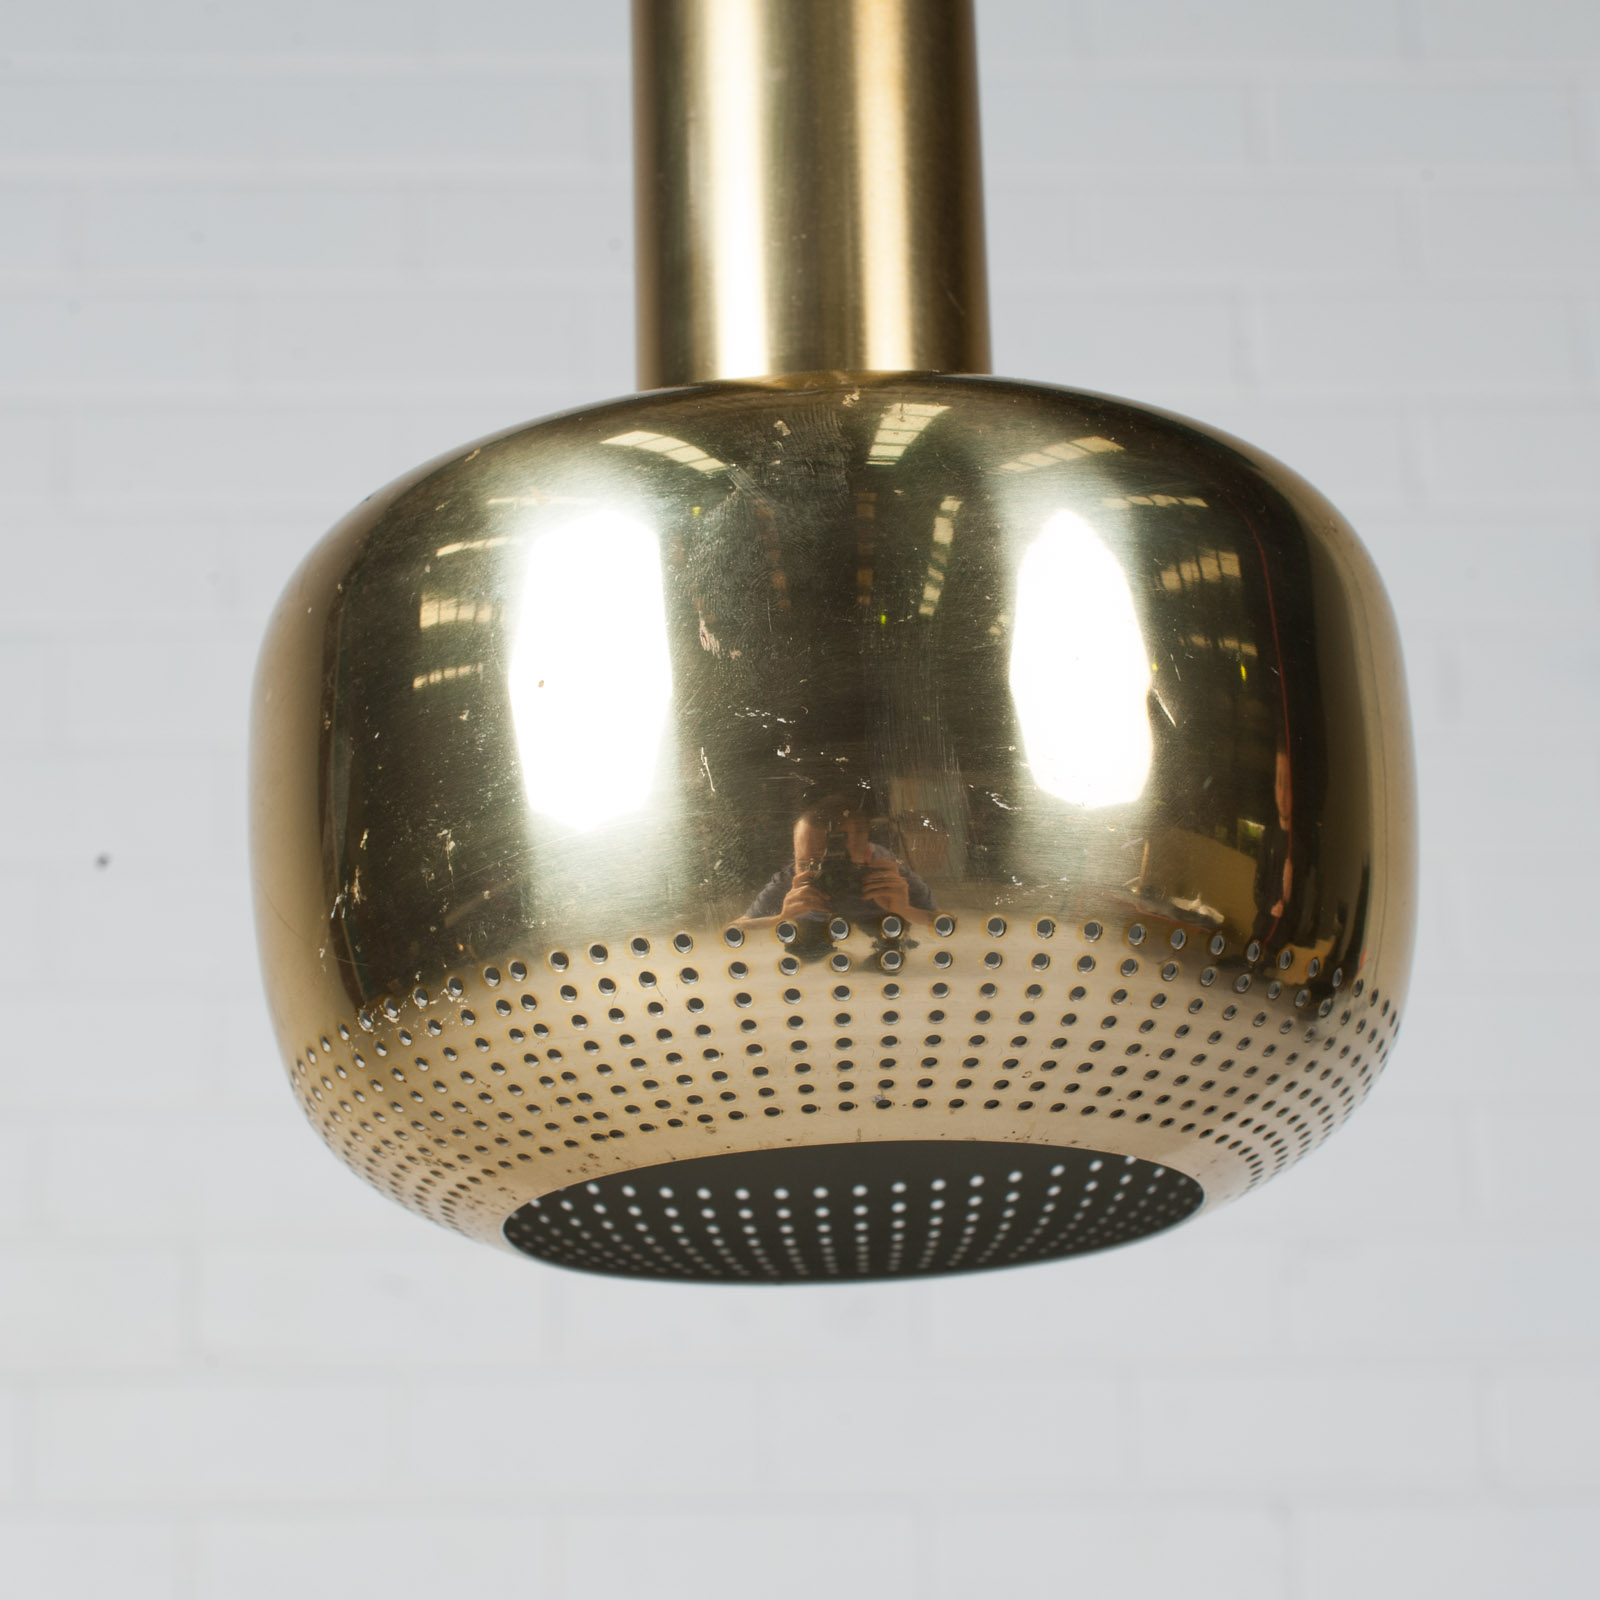 Pair Of Gold Pendants By Vilhelm Lauritzen For Louis Poulsen 1950s Denmark 08